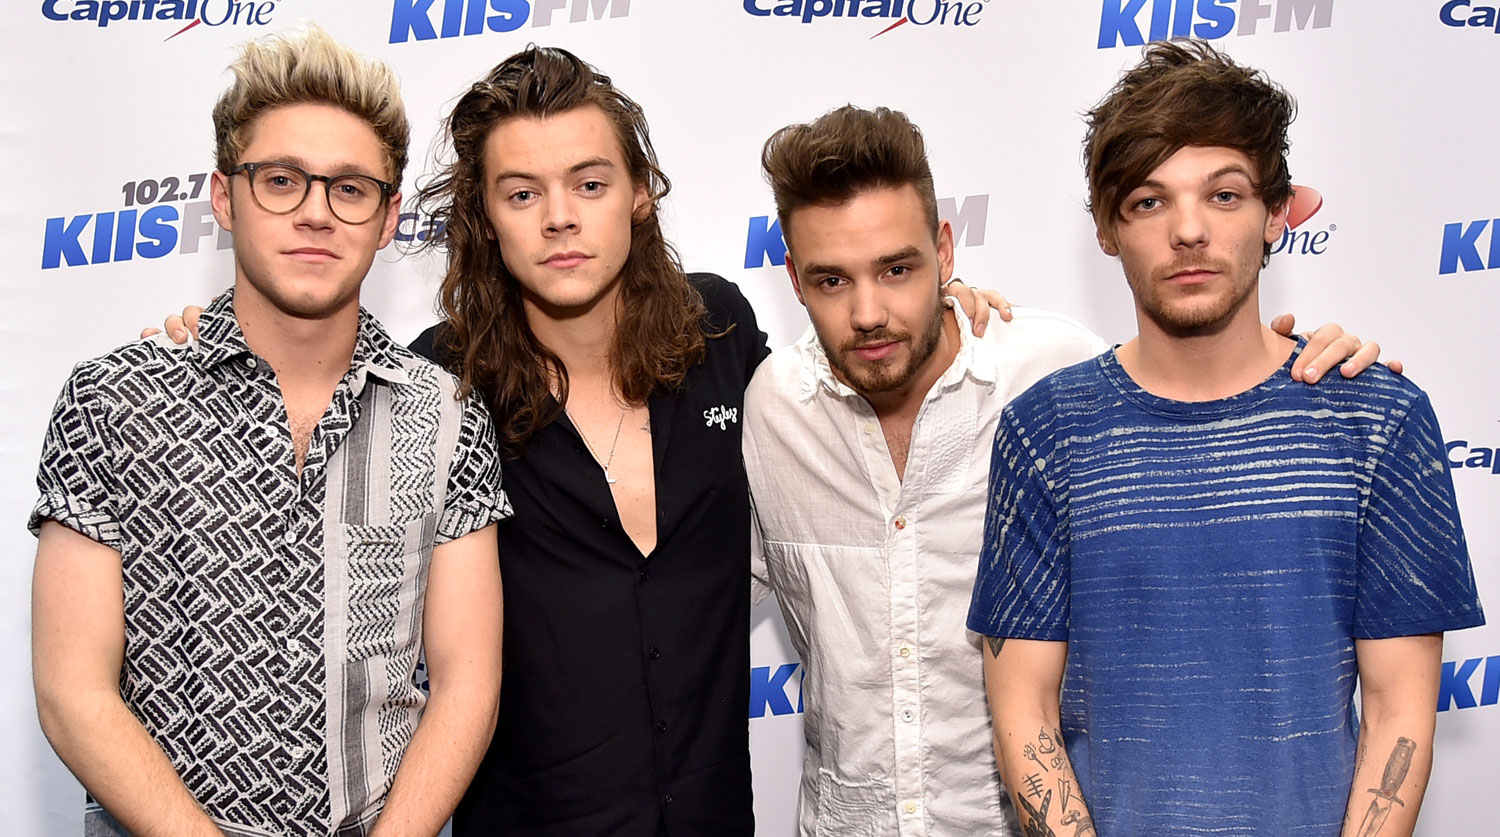 One Direction Played a Prank on the Media About Niall Horan